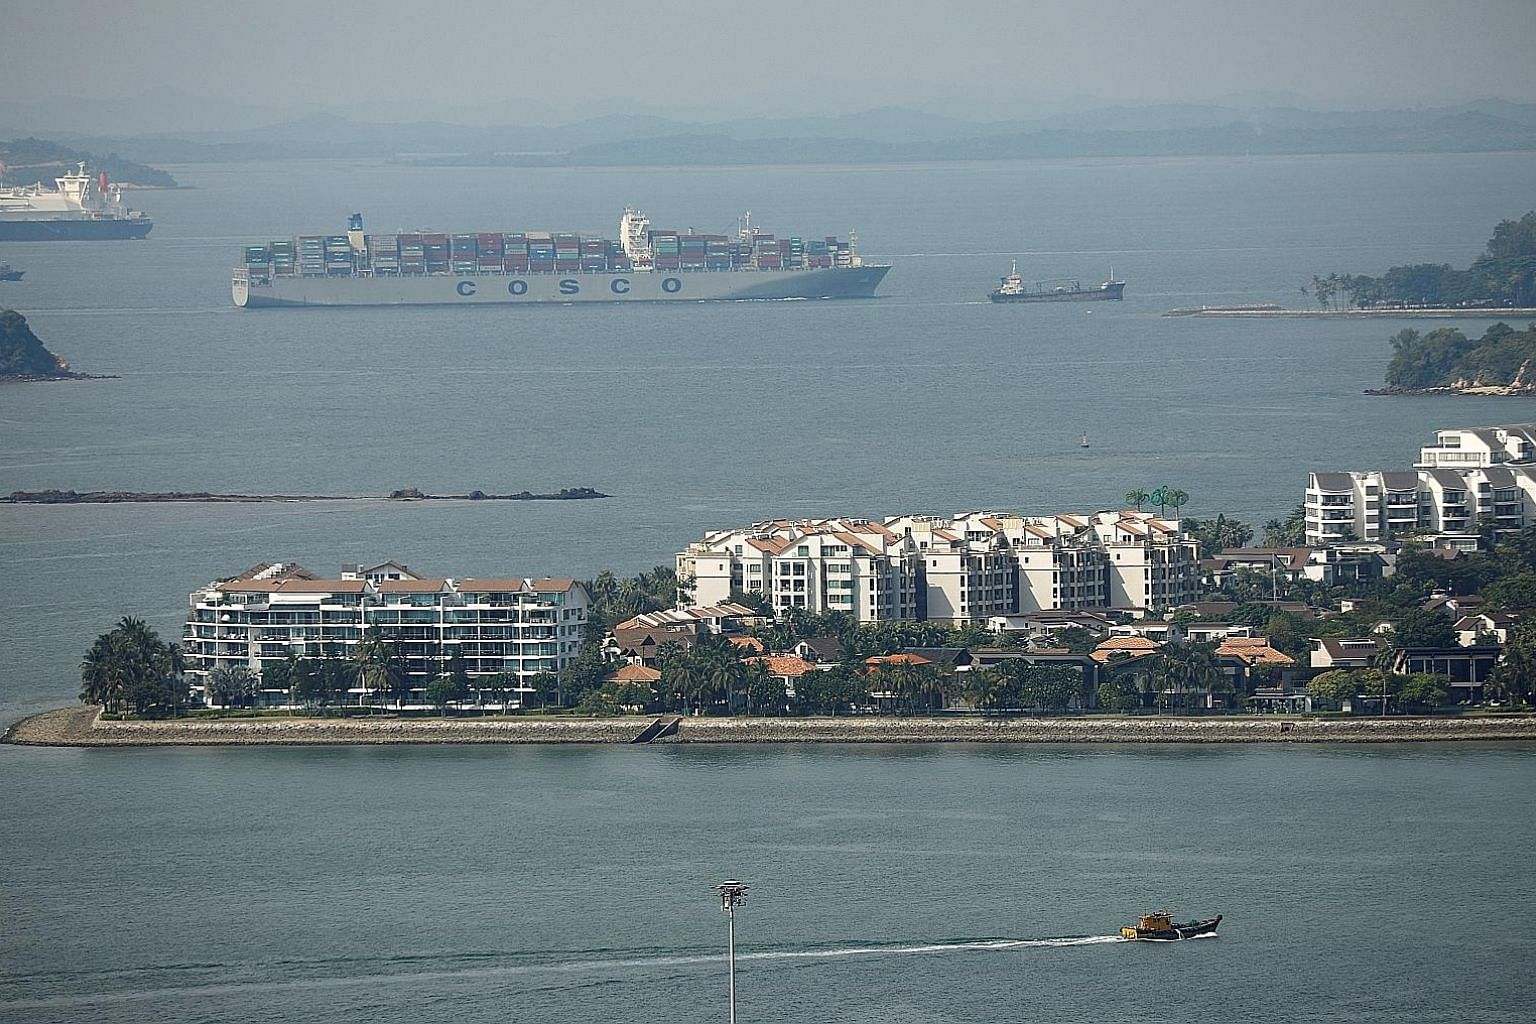 Eight bungalows in Sentosa Cove that were sold in the first six months of this year went for an average $1,541 psf, according to a report released by CBRE. By comparison, popular mass market project Commonwealth Towers sold 47 units in June at a medi